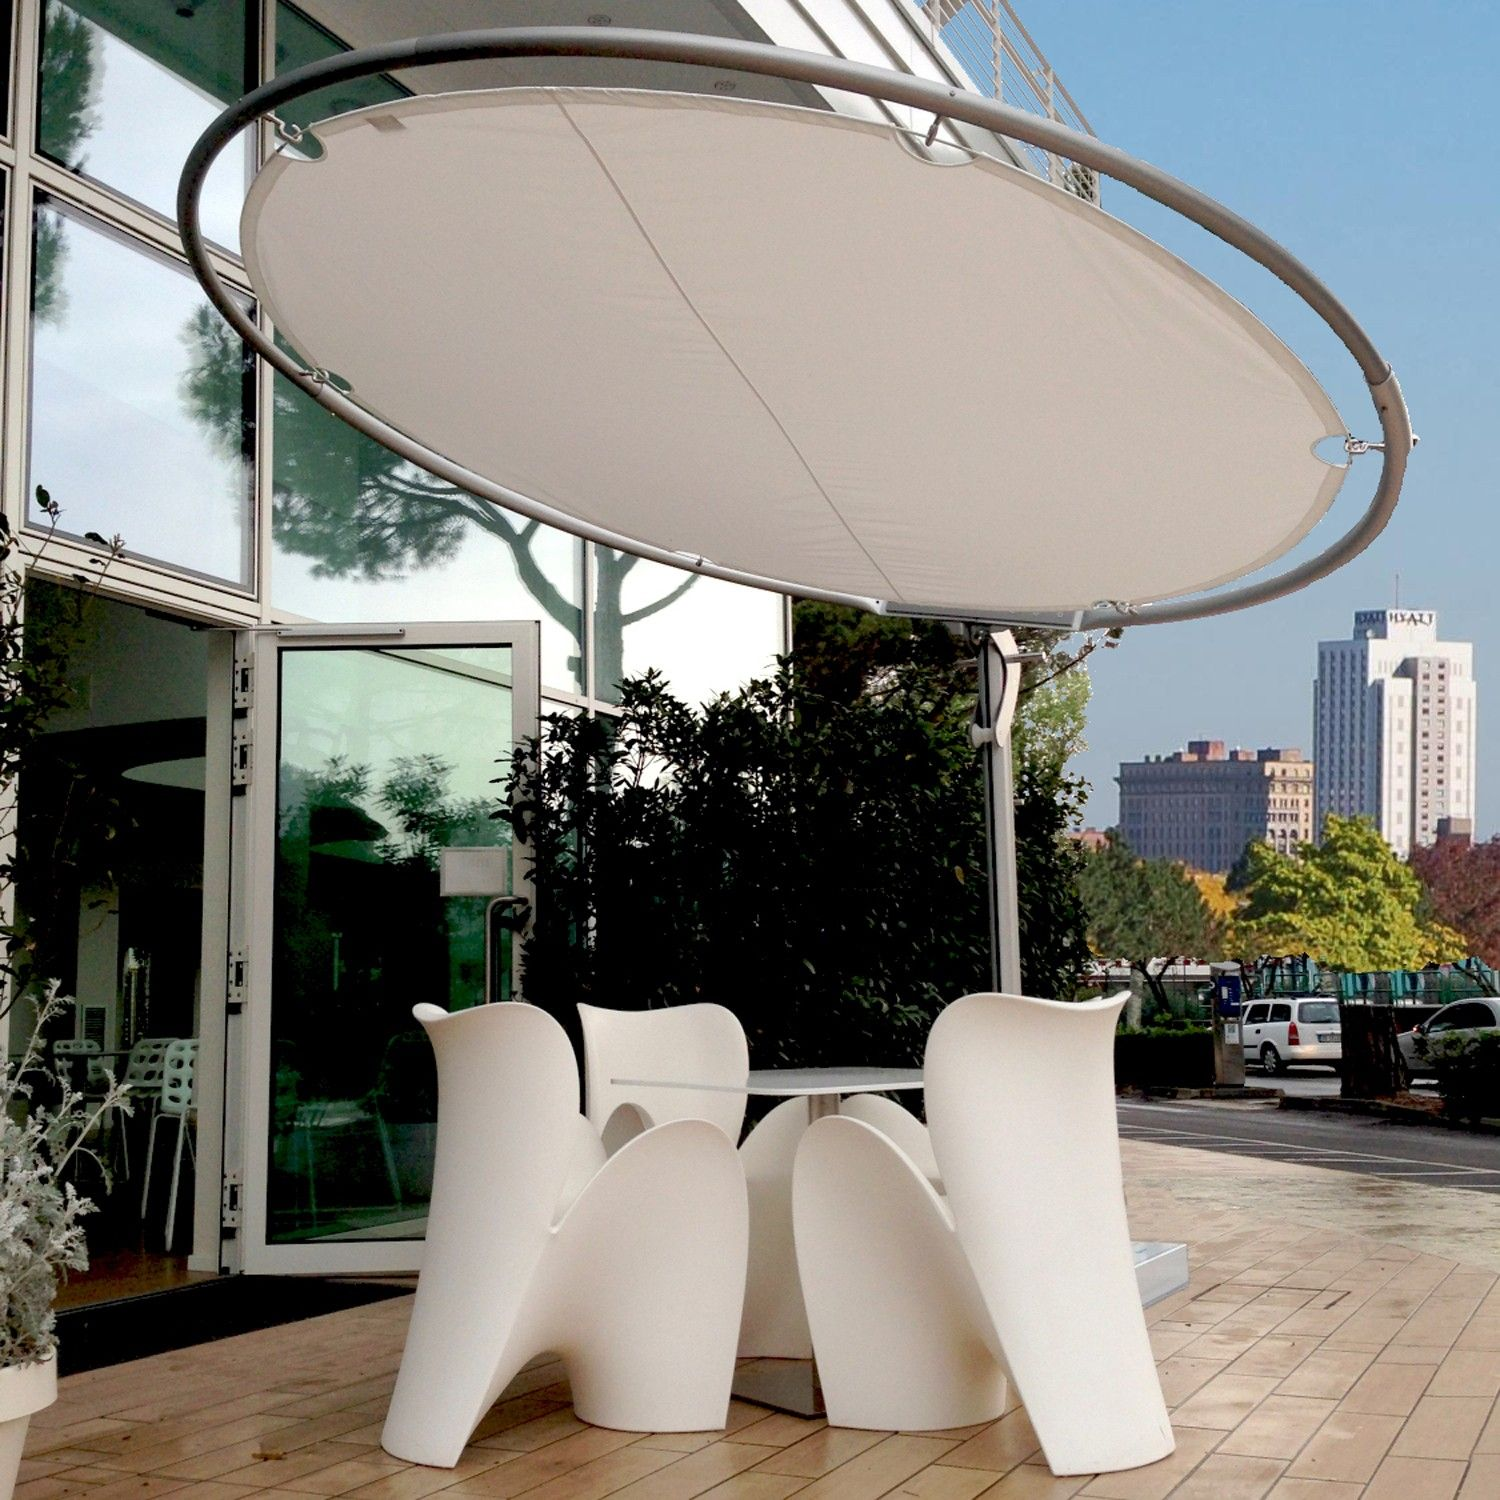 Eclipse Round Umbrella from Umbrosa -- a sleek contemporaryumbrella. It's circular shade can rotate 360 degrees